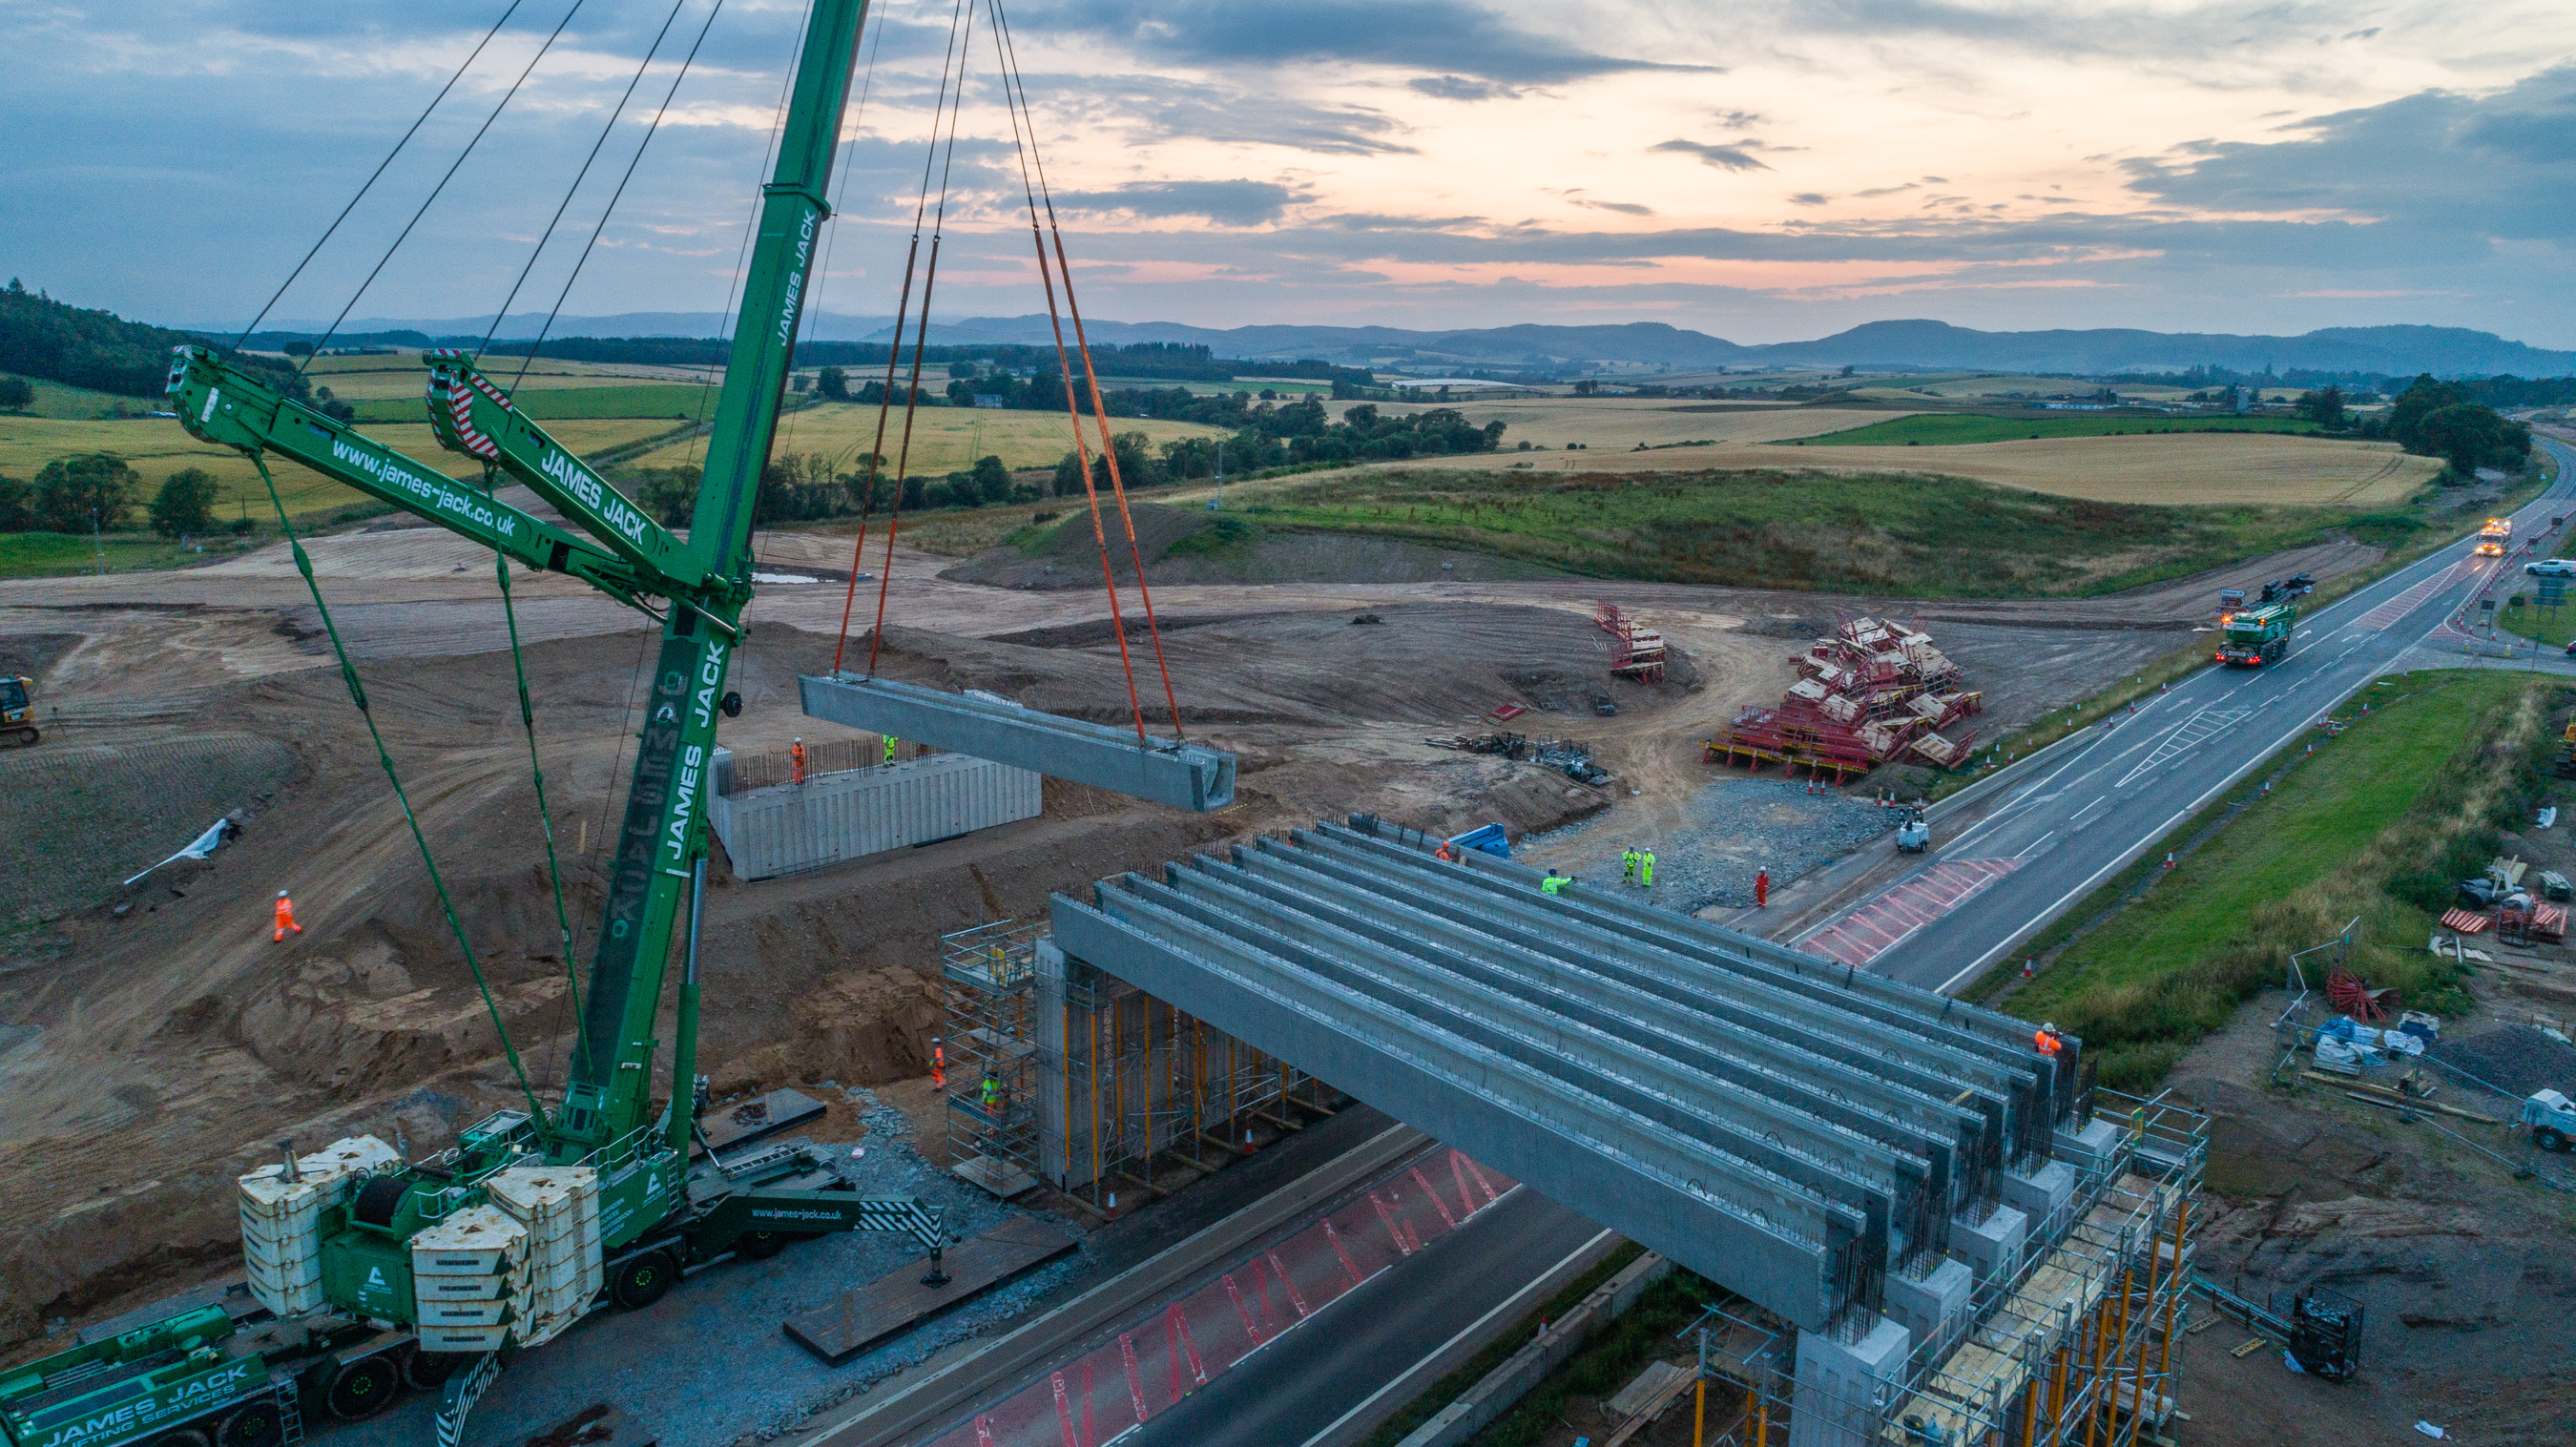 Aerial shot of beam lift at Tullybelton